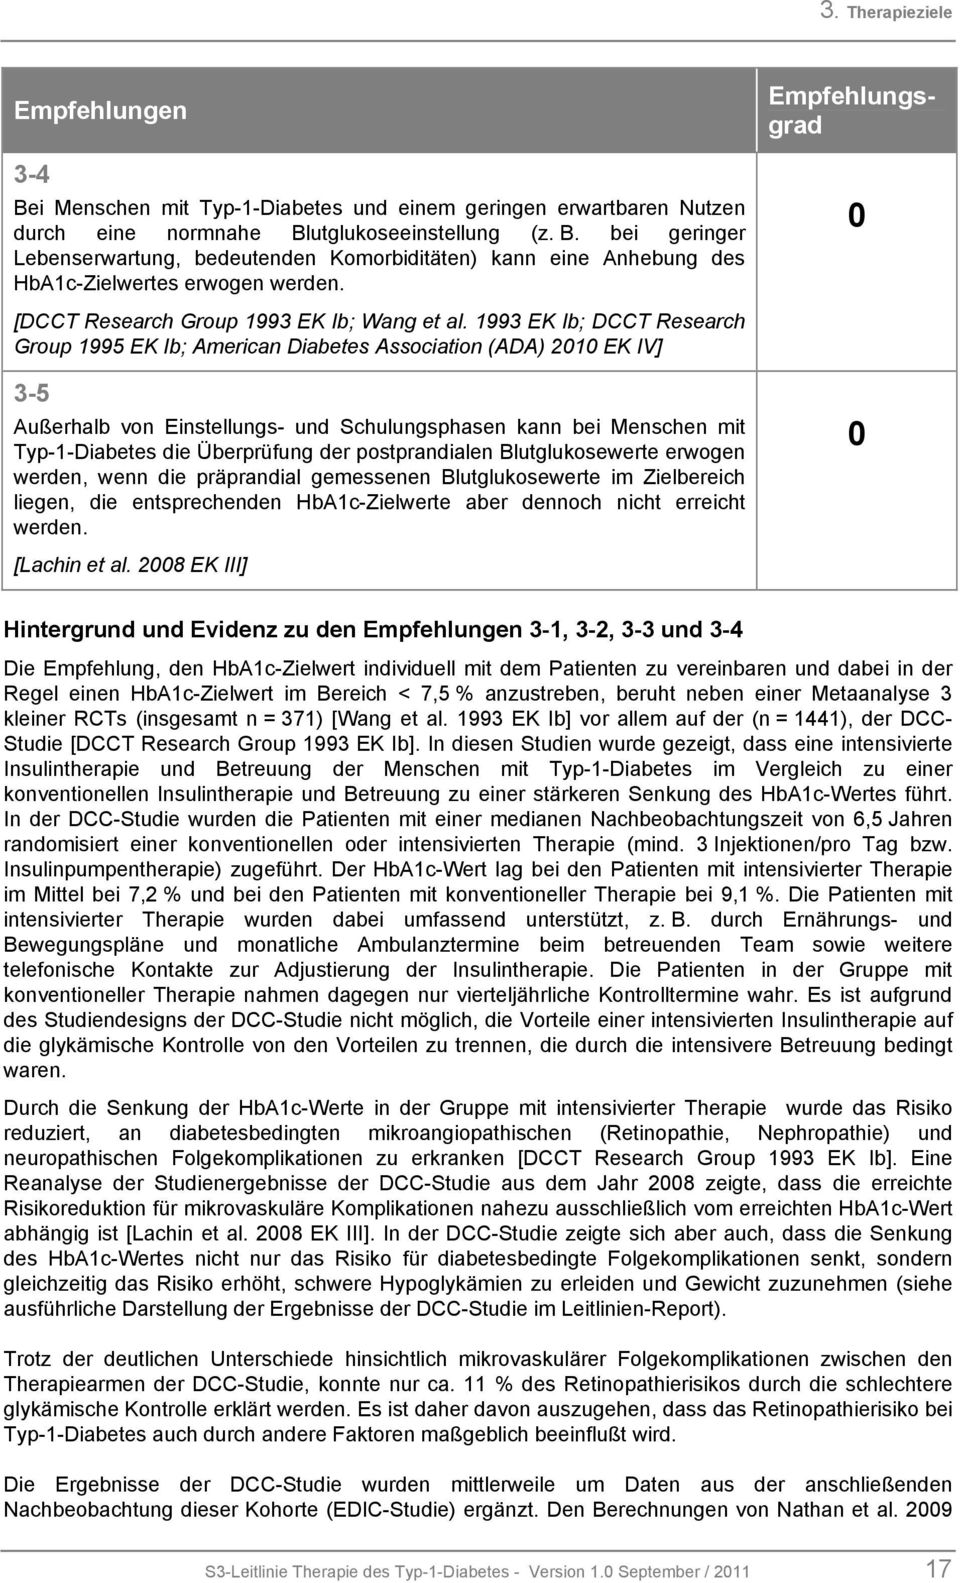 1993 EK Ib; DCCT Research Group 1995 EK Ib; American Diabetes Association (ADA) 2010 EK IV] 3-5 Außerhalb von Einstellungs- und Schulungsphasen kann bei Menschen mit Typ-1-Diabetes die Überprüfung